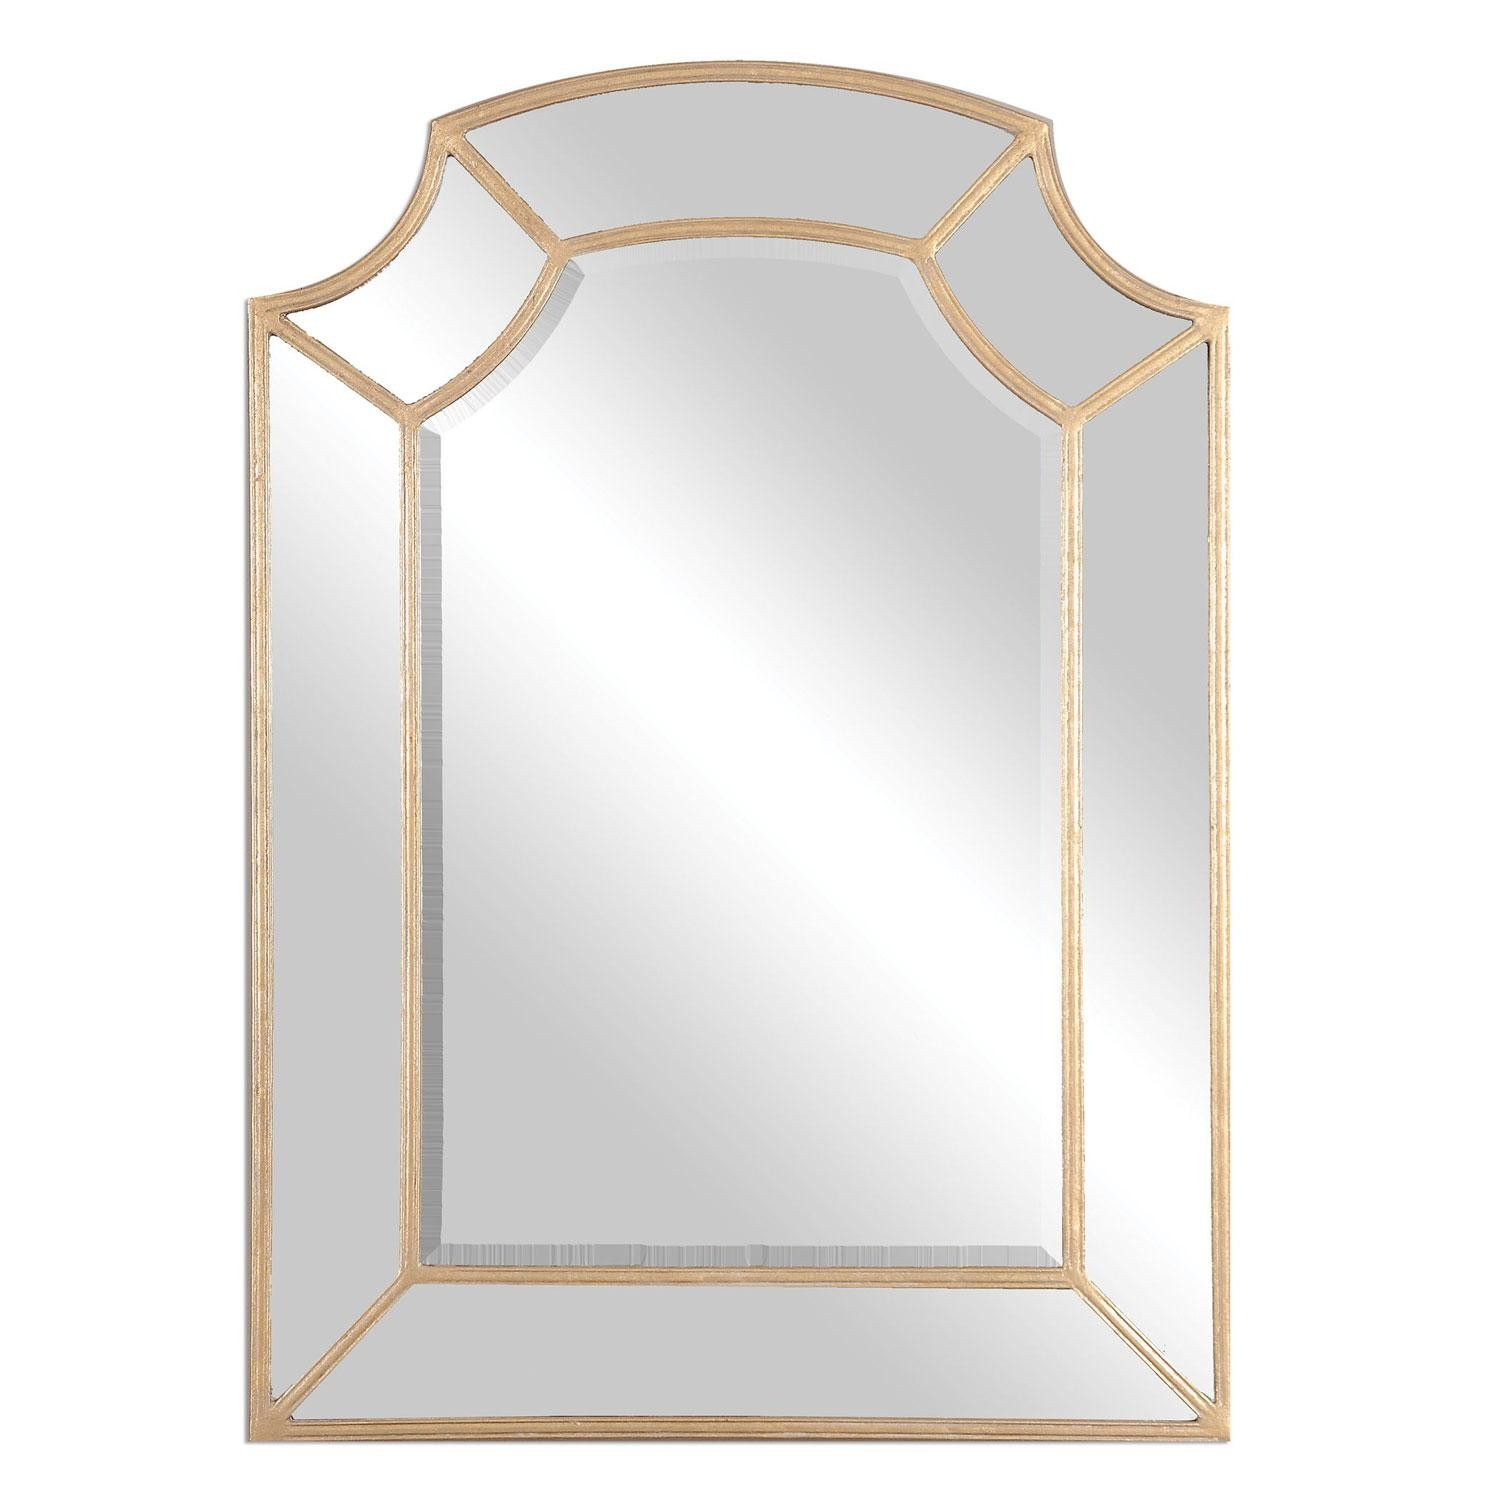 Francoli Gold Arch Mirror Uttermost Wall Mirror Mirrors Home Decor With Gold Arch Mirror (Image 4 of 20)